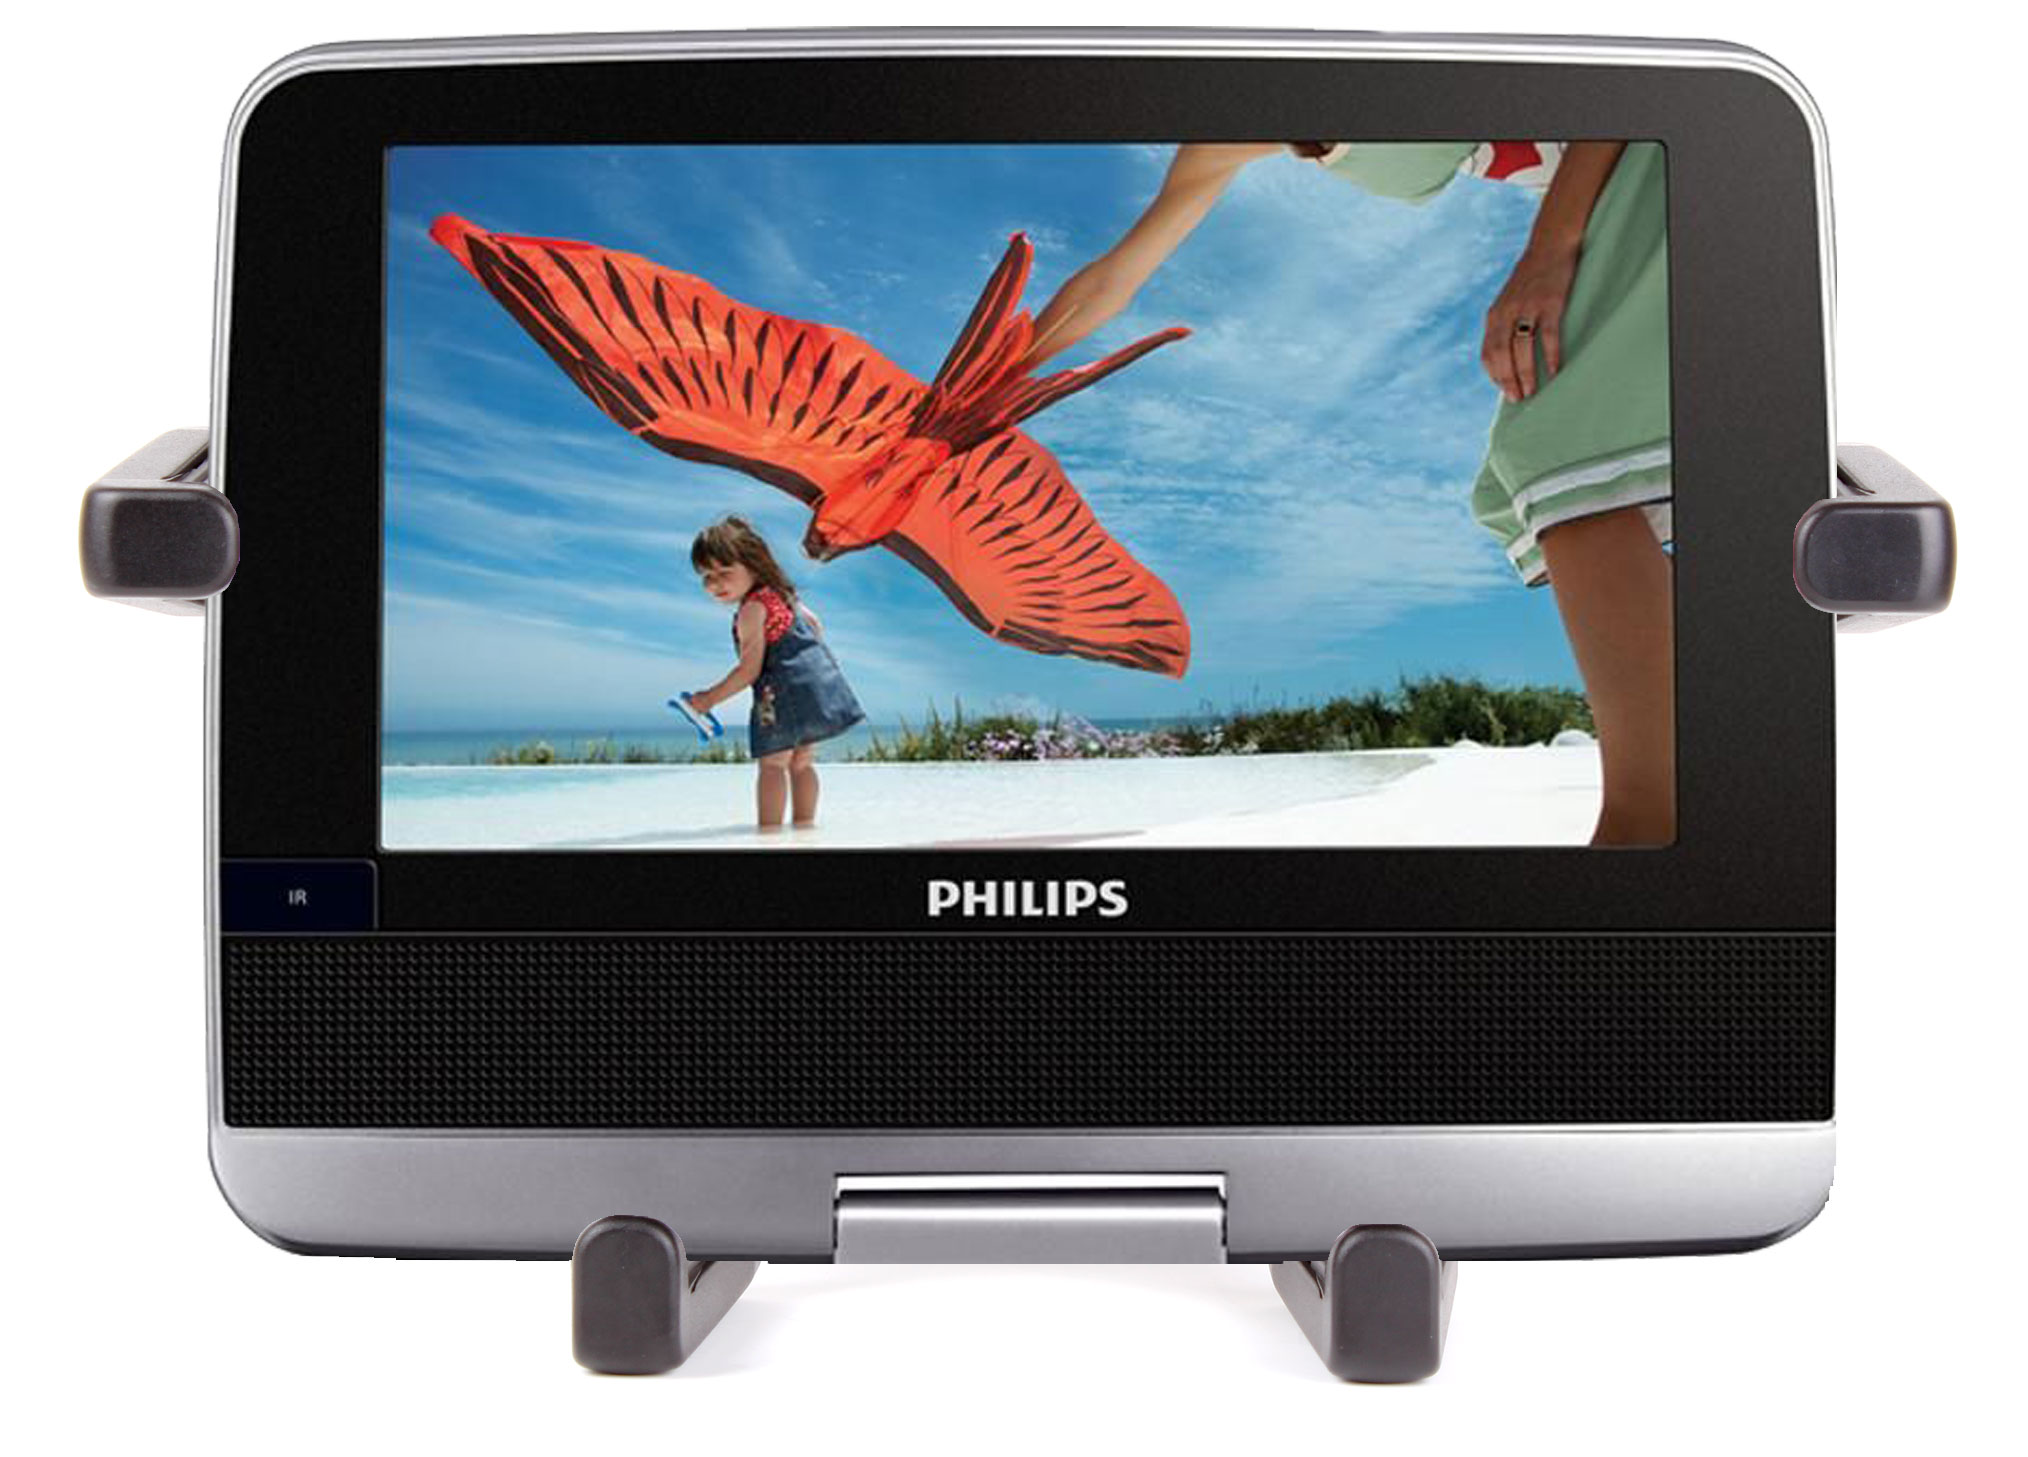 support appui t te voiture pour lecteur dvd philips pd7022. Black Bedroom Furniture Sets. Home Design Ideas